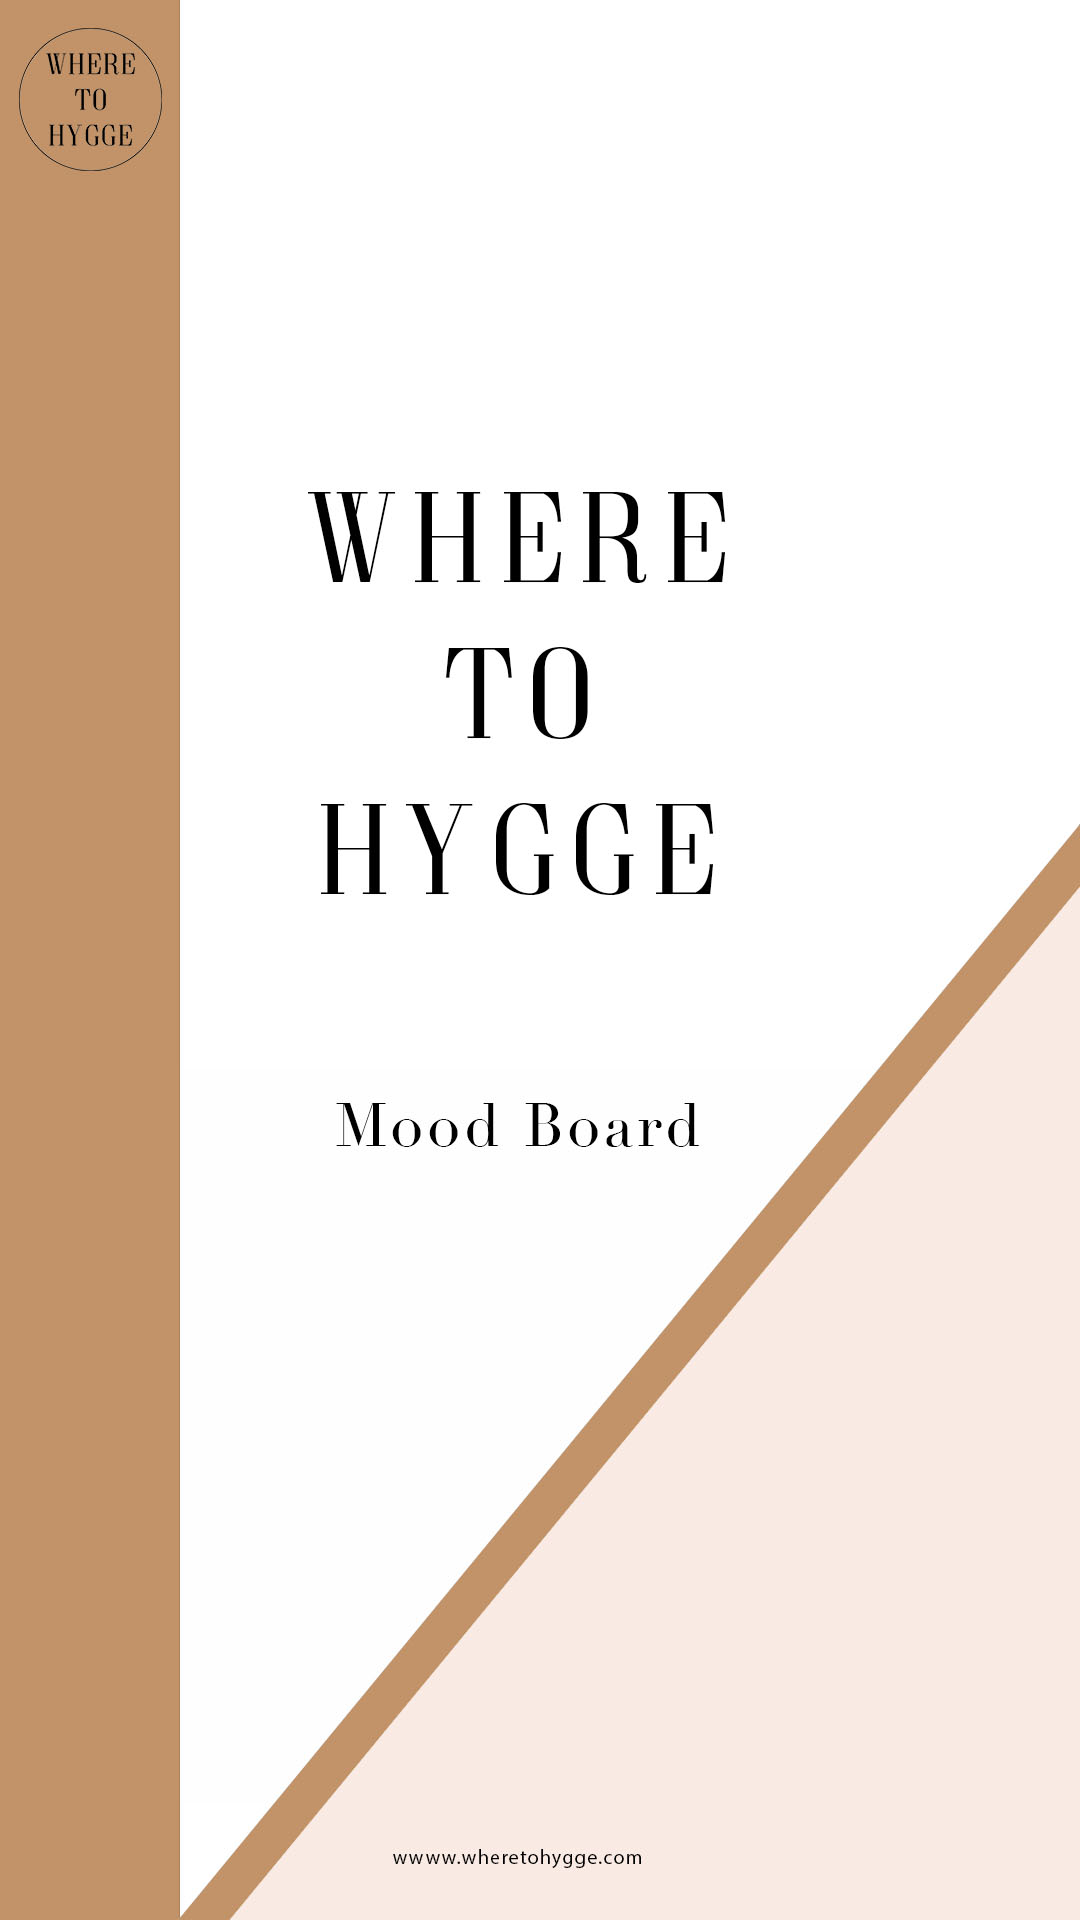 Where to hygge mood board and collage, part of the influencer media kit